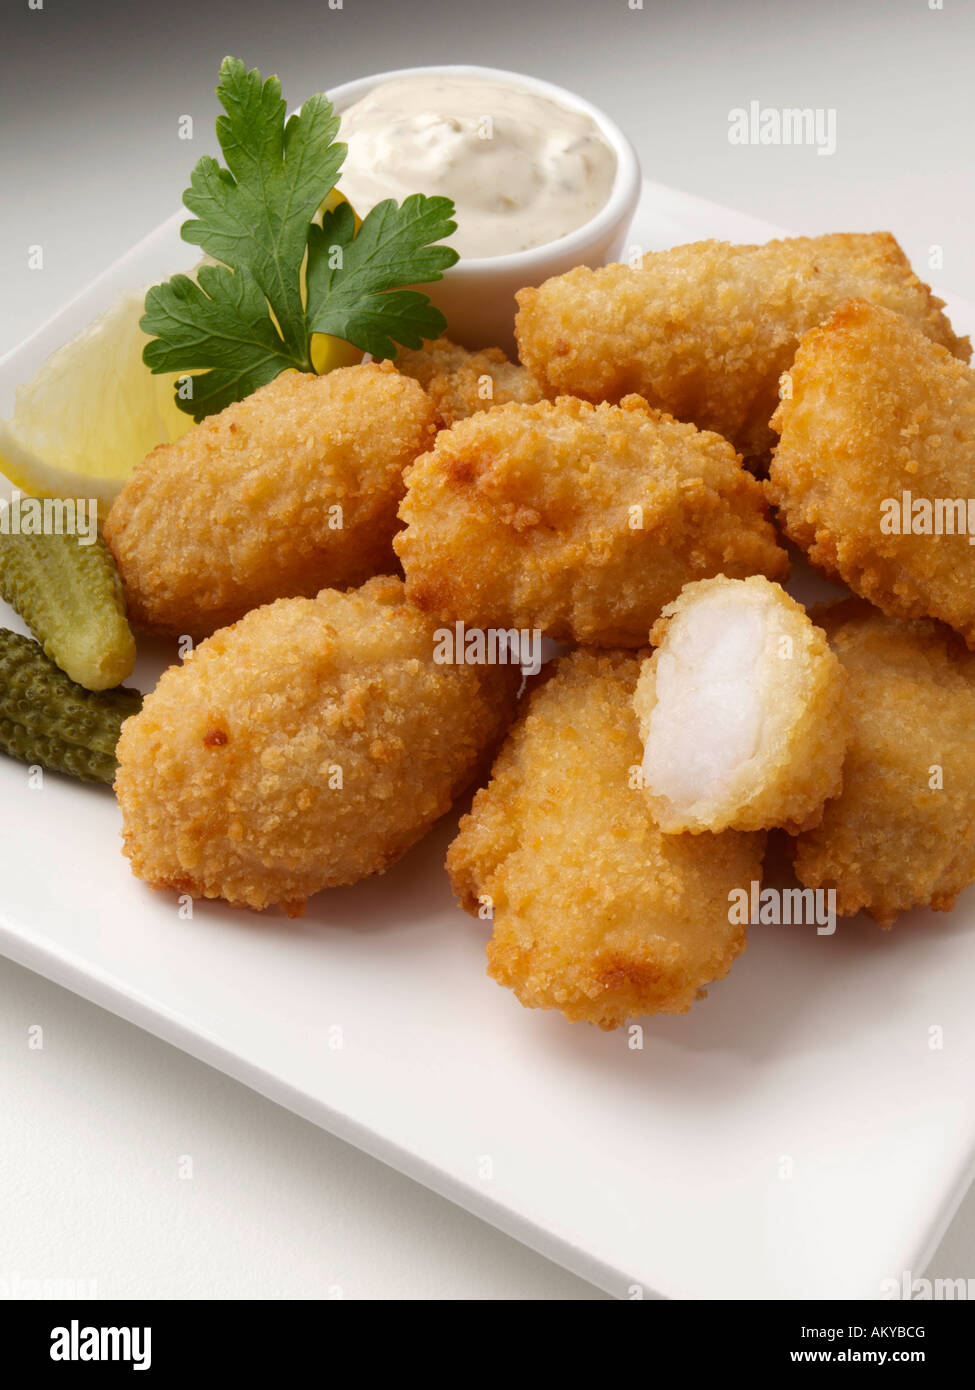 Scampi breaded seafoods horseradish editorial food Stock Photo